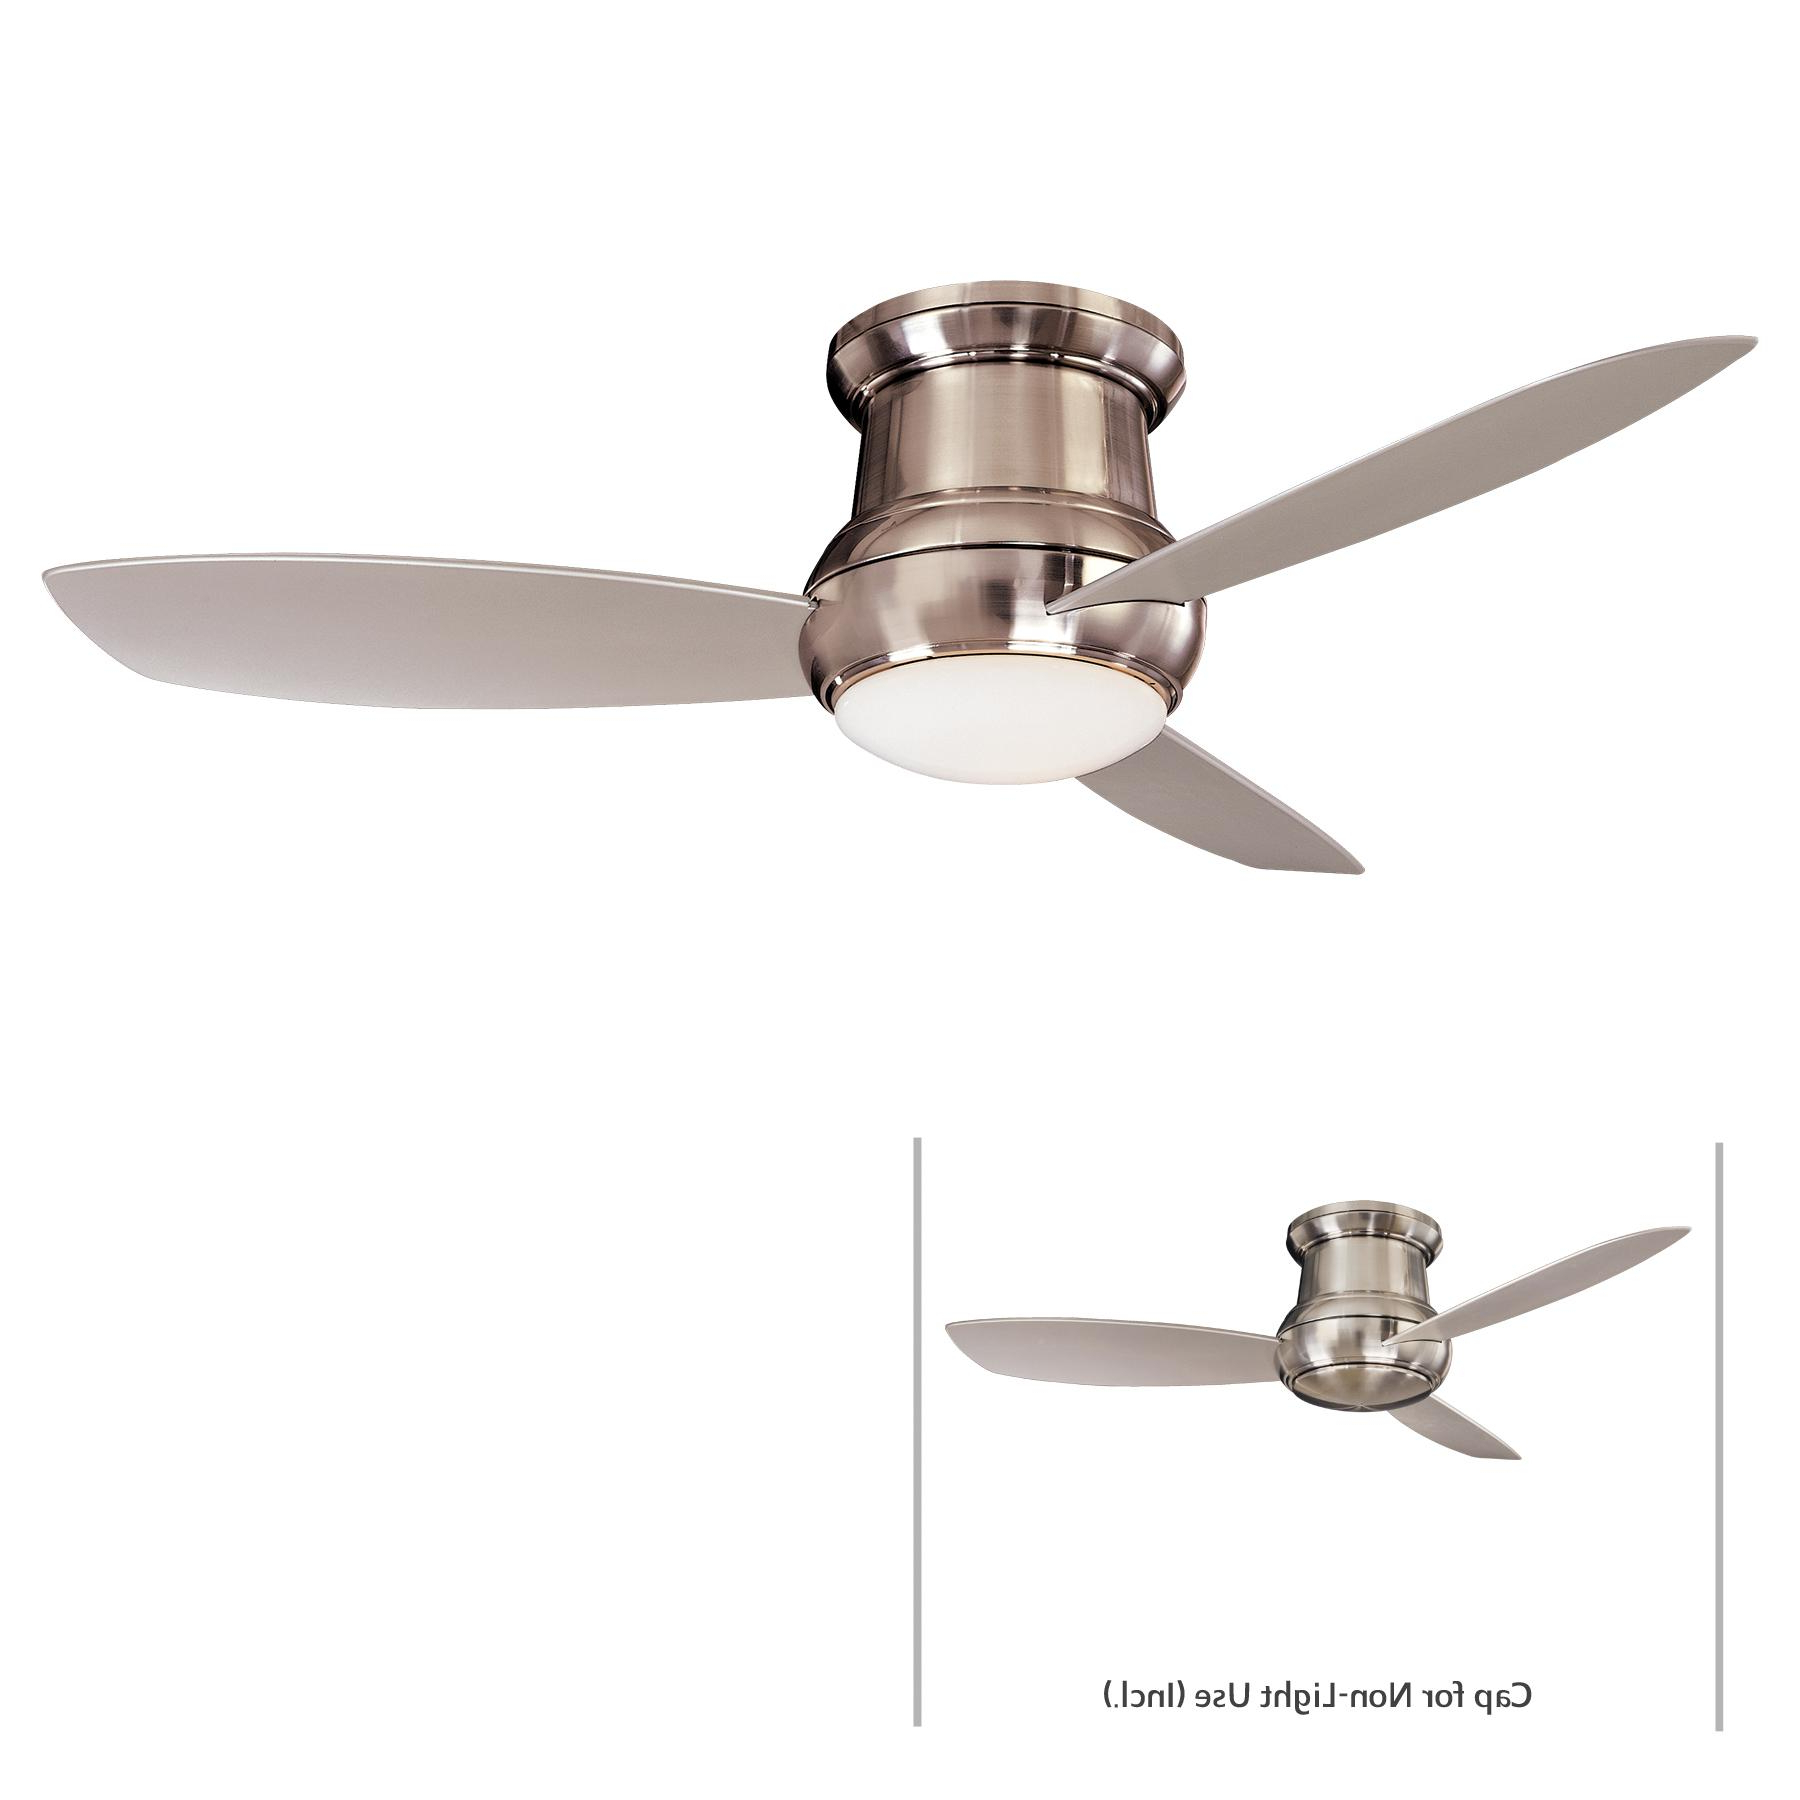 """Details About Minka Aire F474l Bnw 52"""" Led Flush Mount Ceiling Fan Pertaining To Latest Concept Ii 3 Blade Led Ceiling Fans With Remote (Gallery 9 of 20)"""